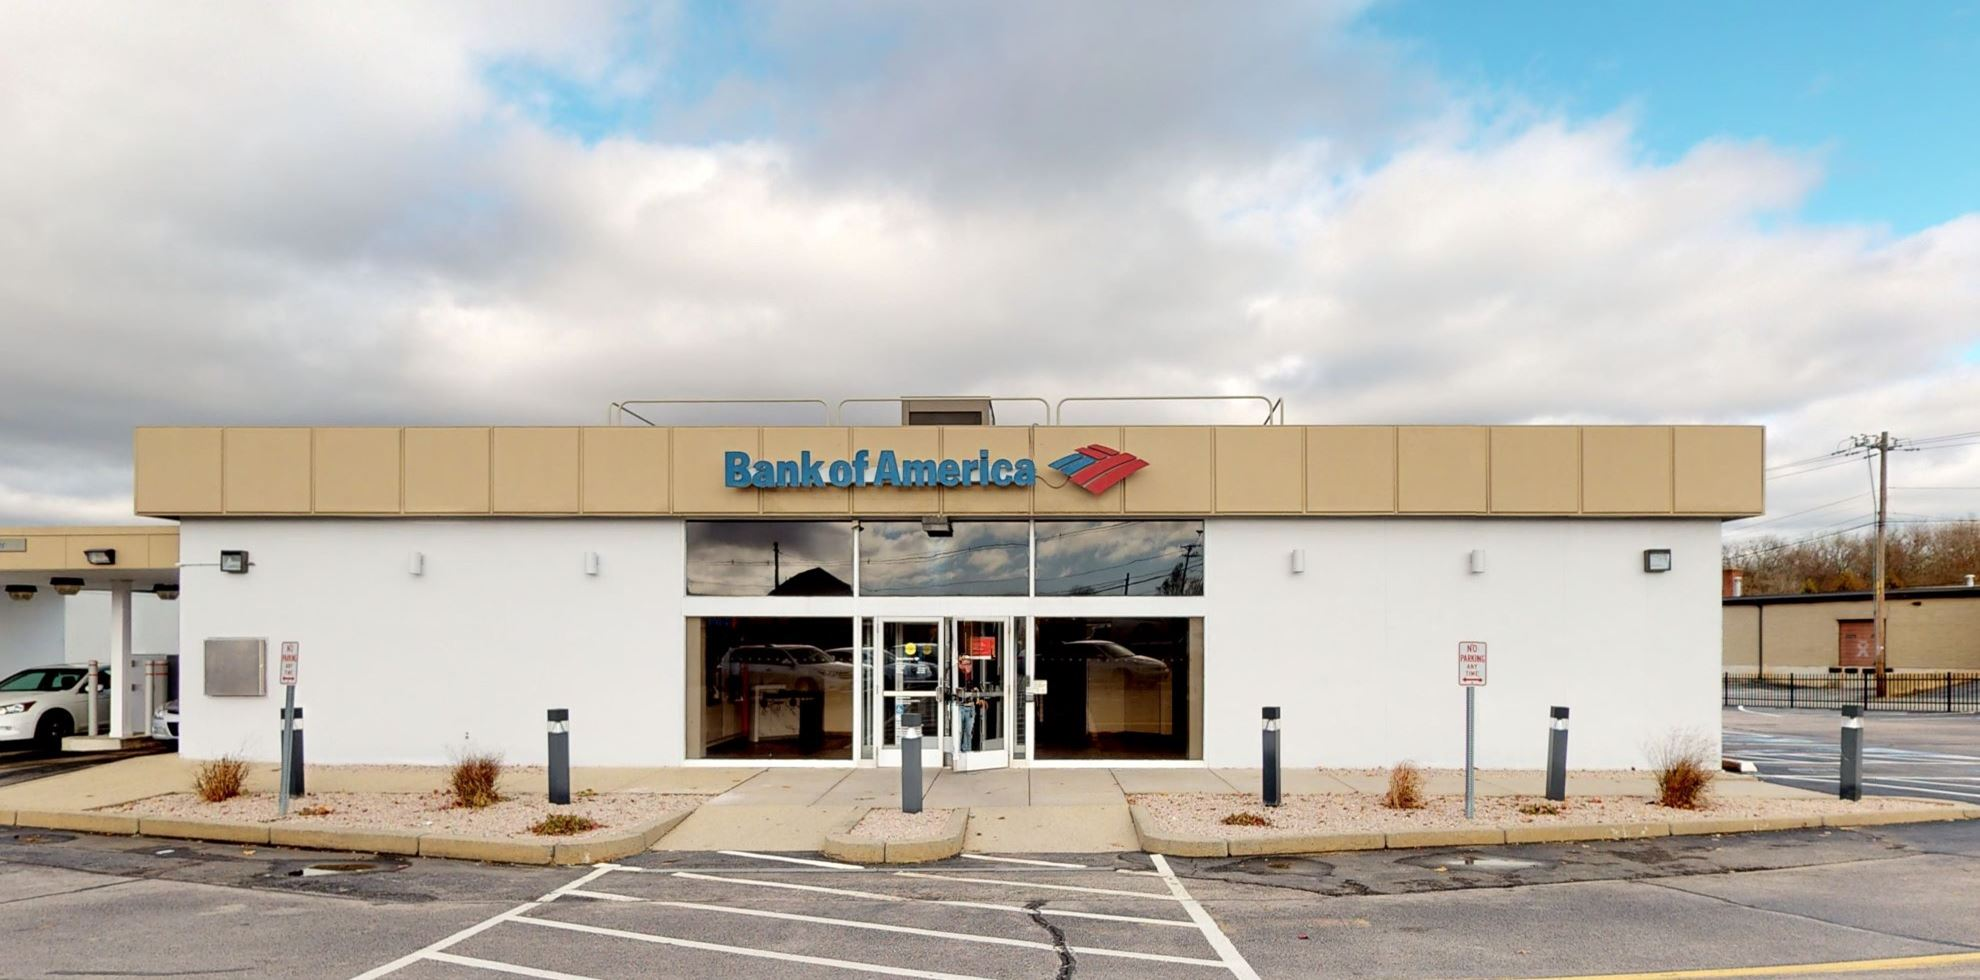 Bank of America financial center with drive-thru ATM | 4 Old Tower Hill Rd, Wakefield, RI 02879